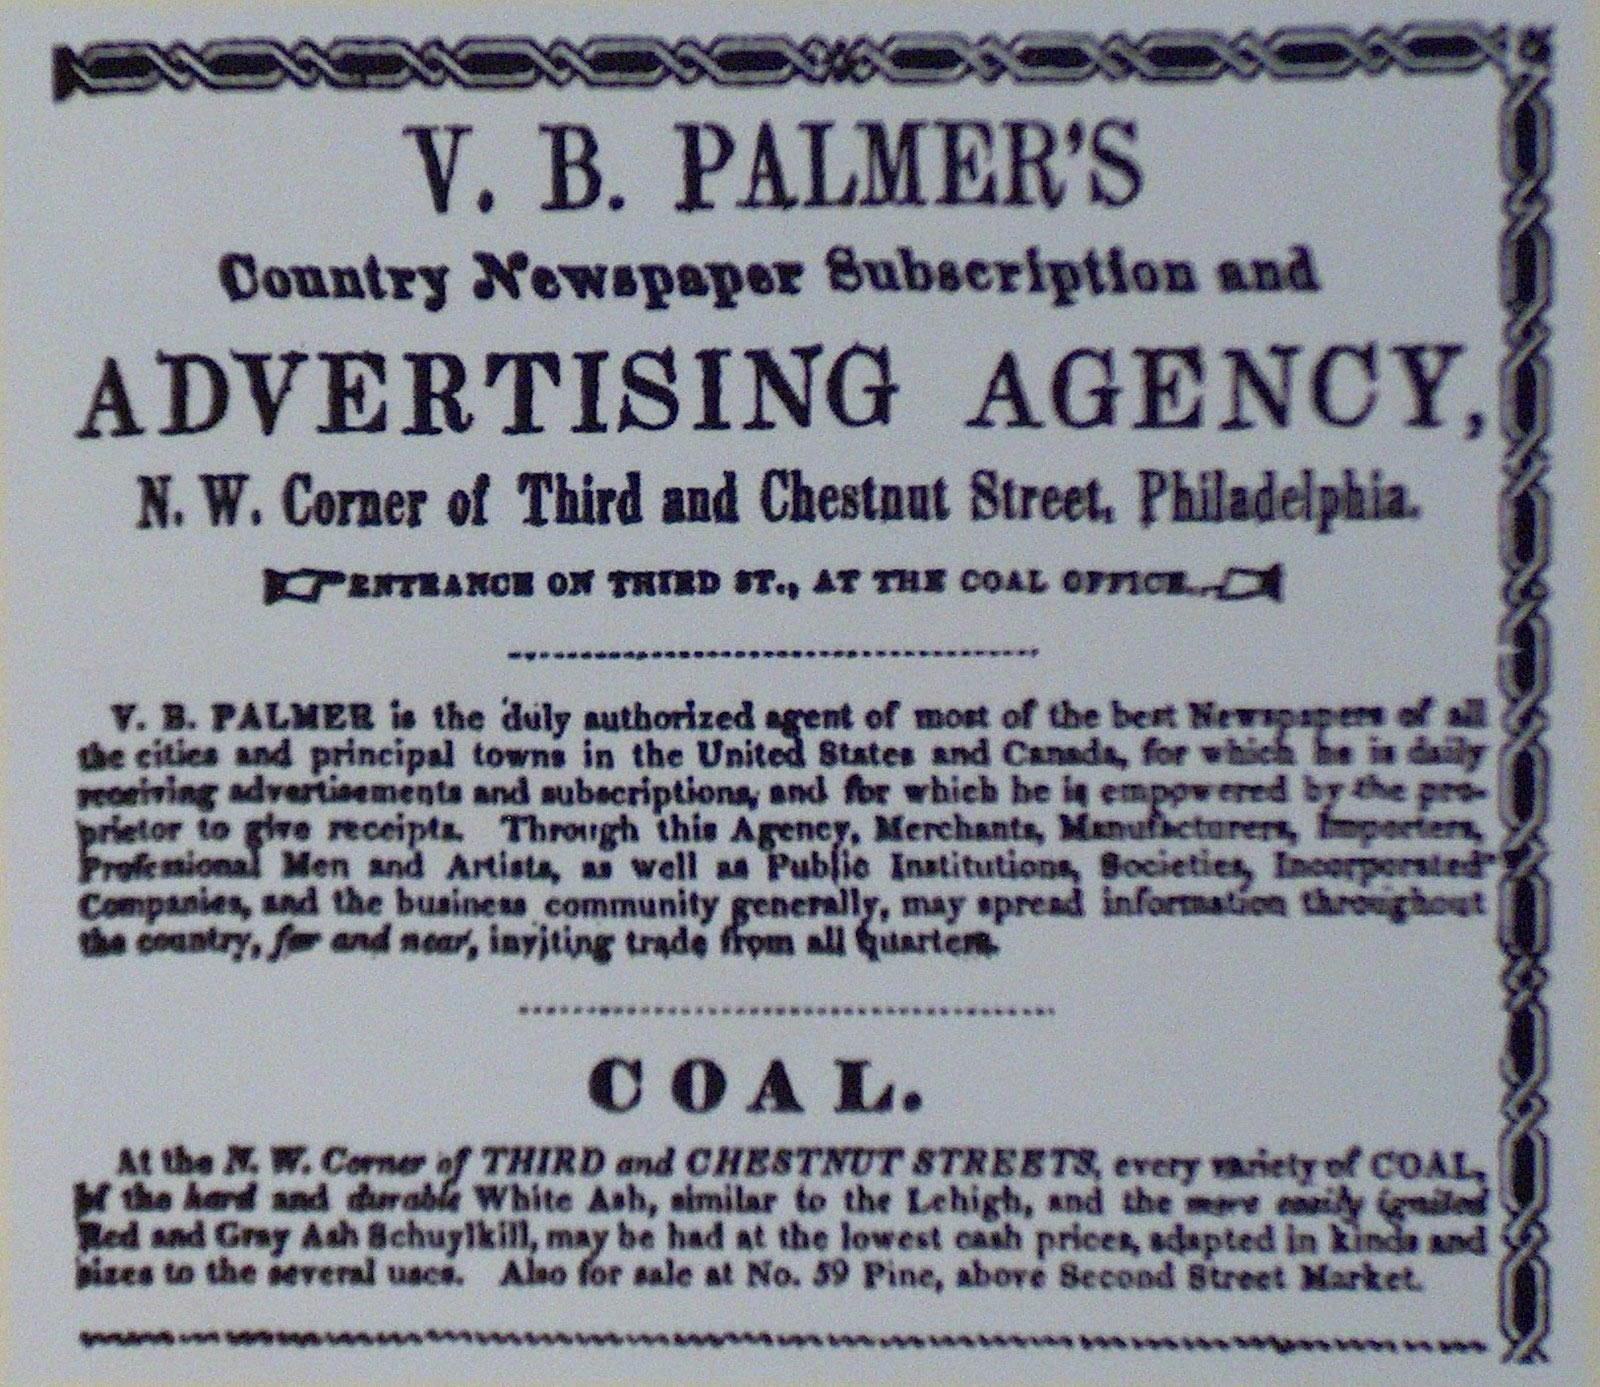 An Ad for Palmer's Ad Agency